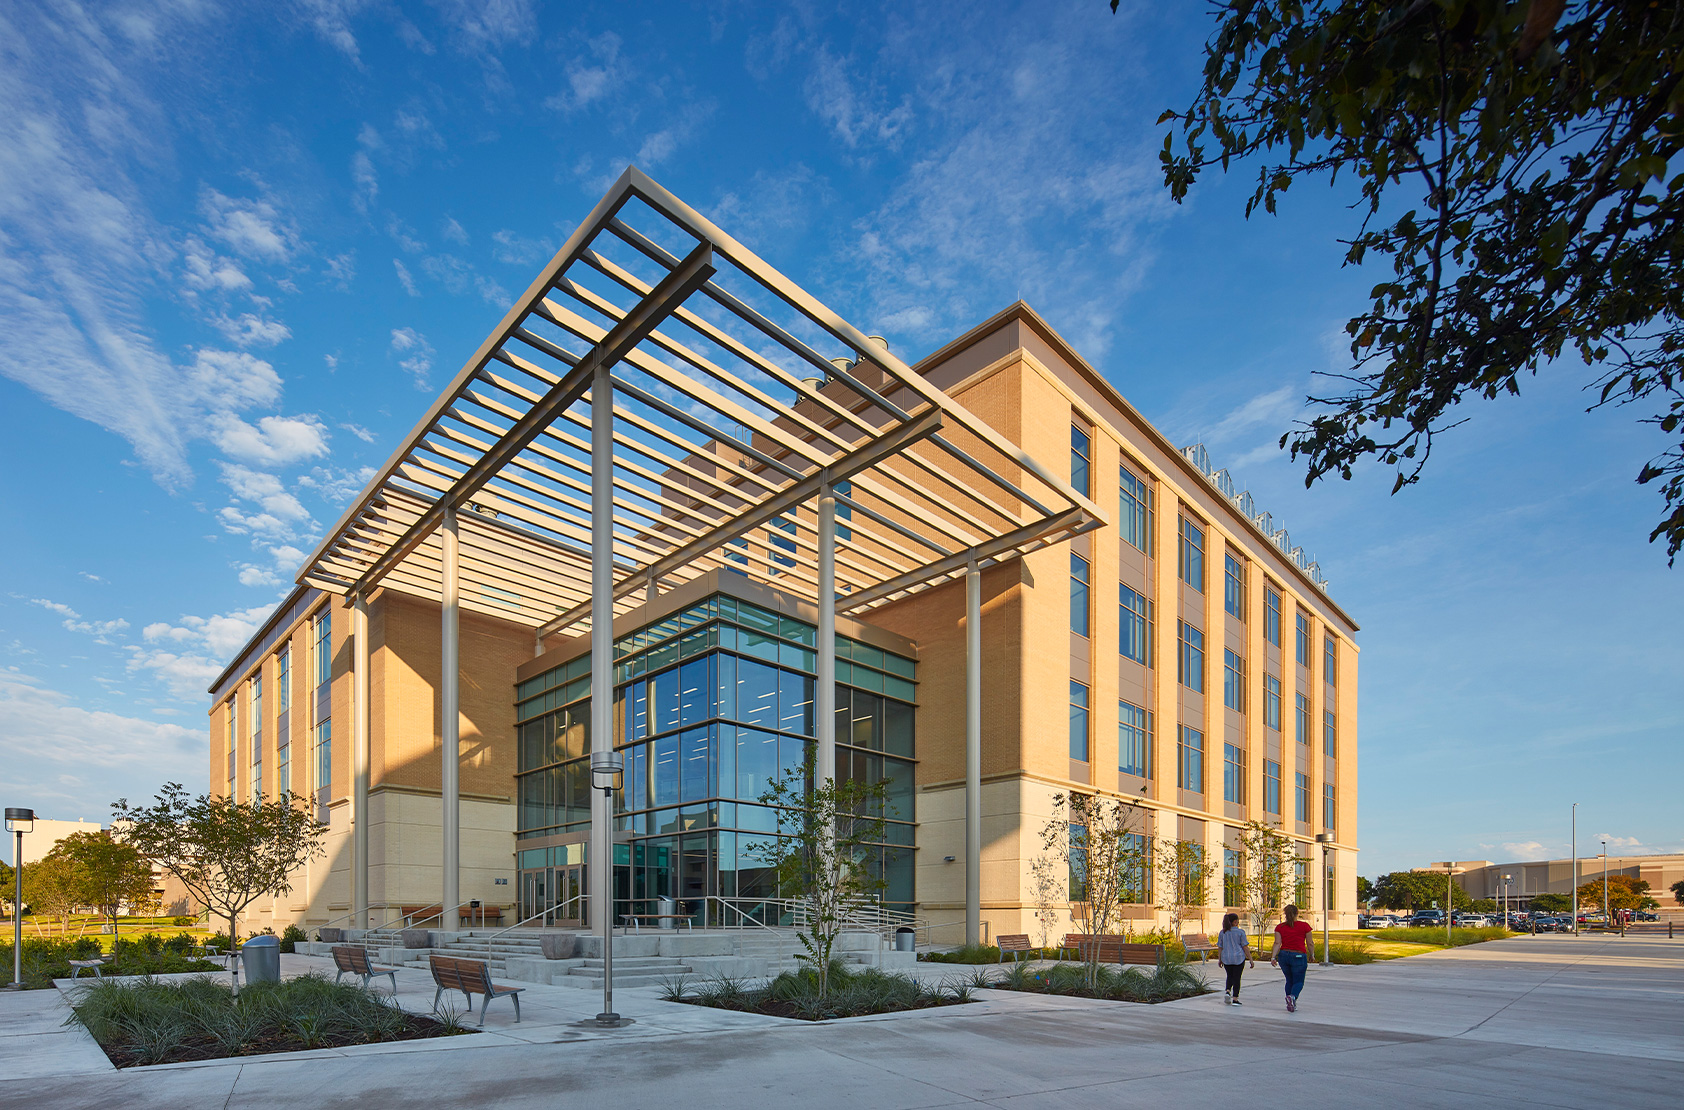 Texas A&M University - Plant Pathology and Microbiology Building